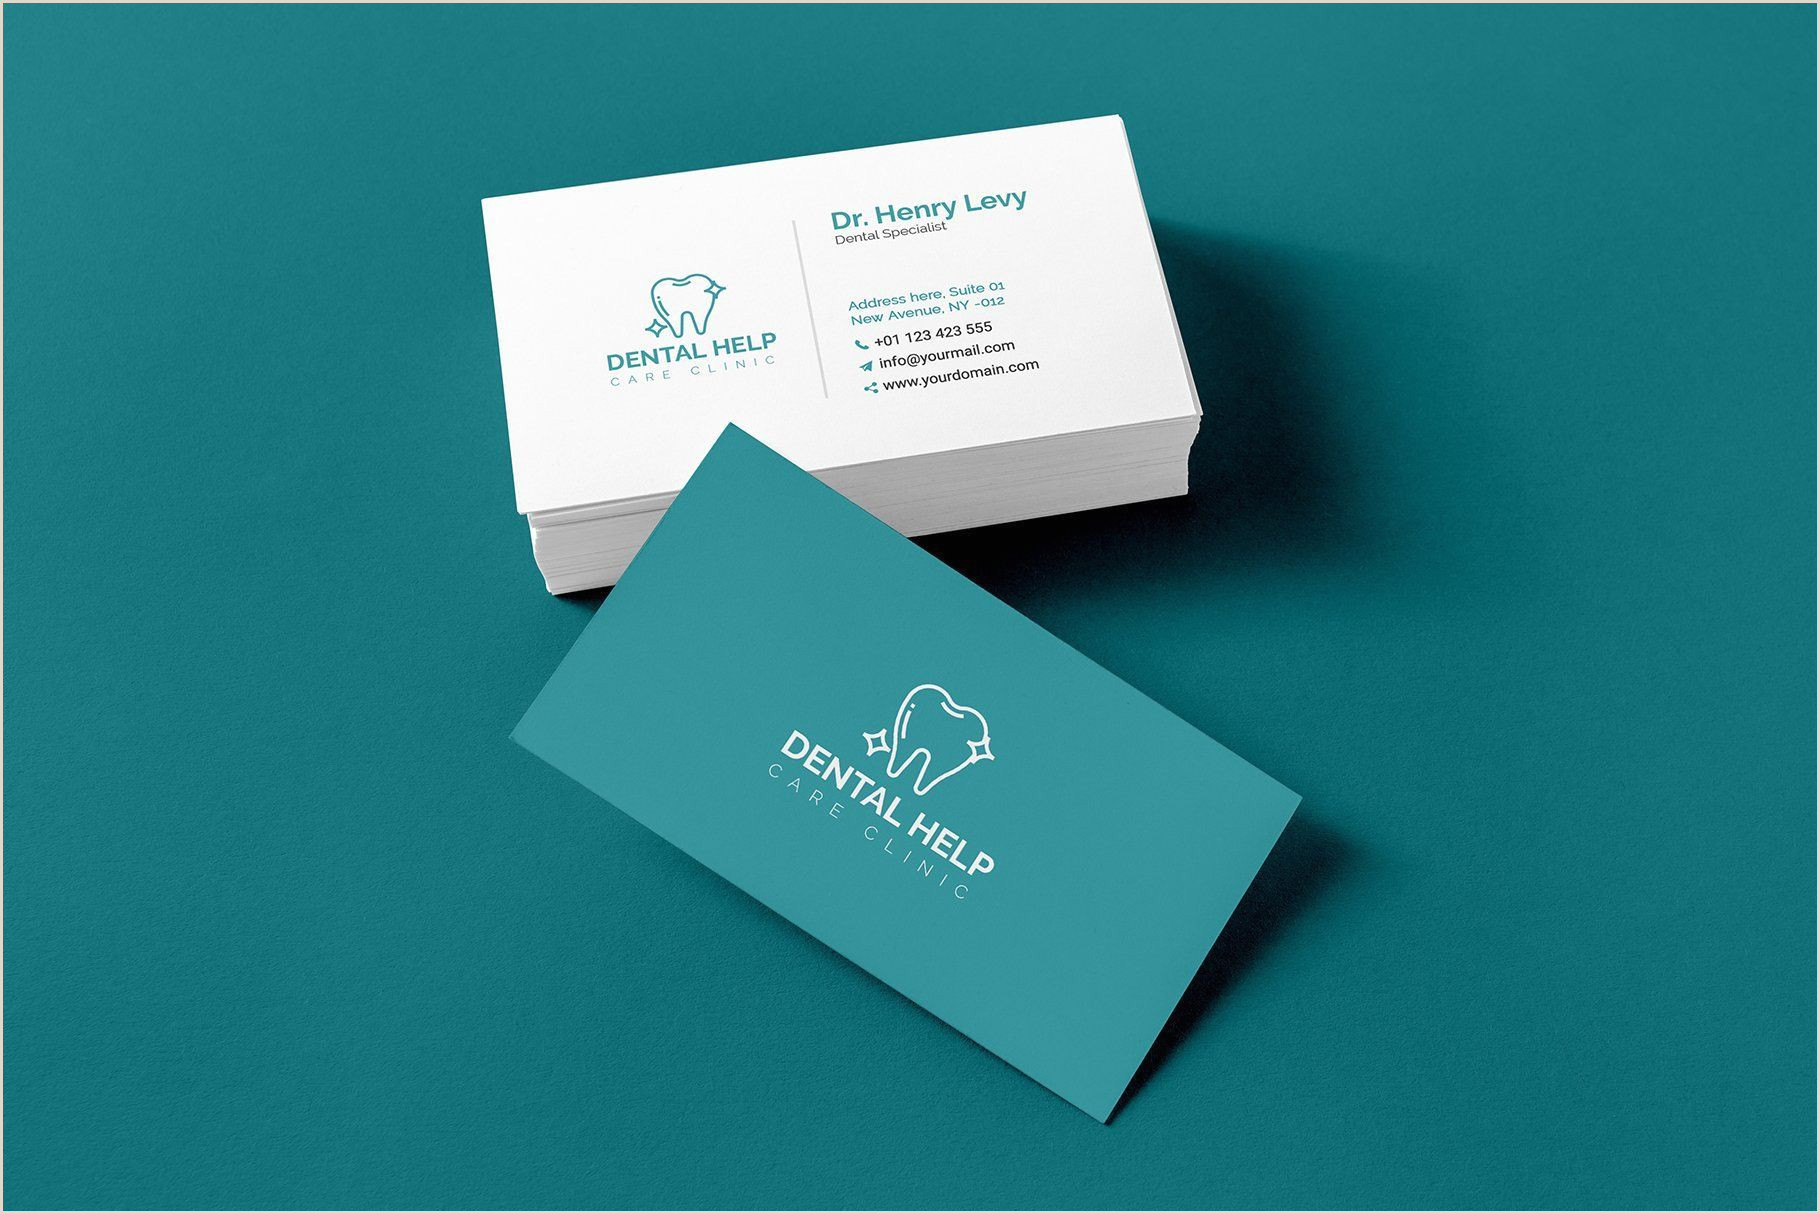 Personal Business Cards Template Dentist Business Card Templates In 2020